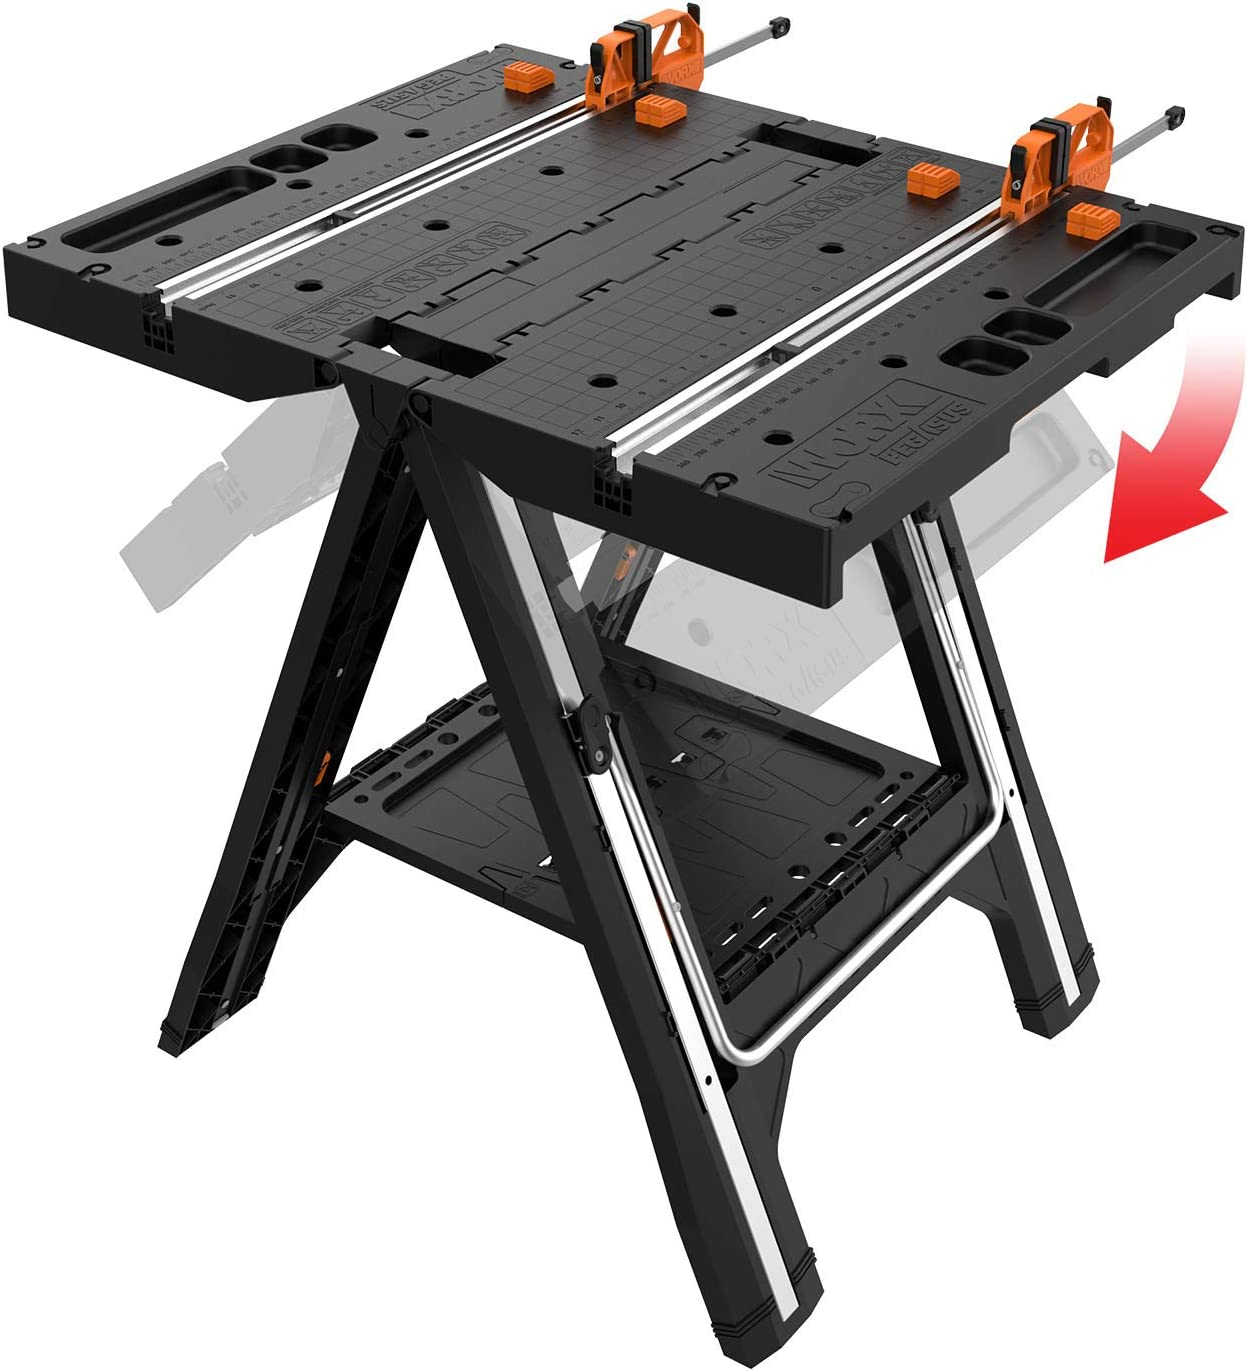 WORX Pegasus Multi-Function Portable Table Saws